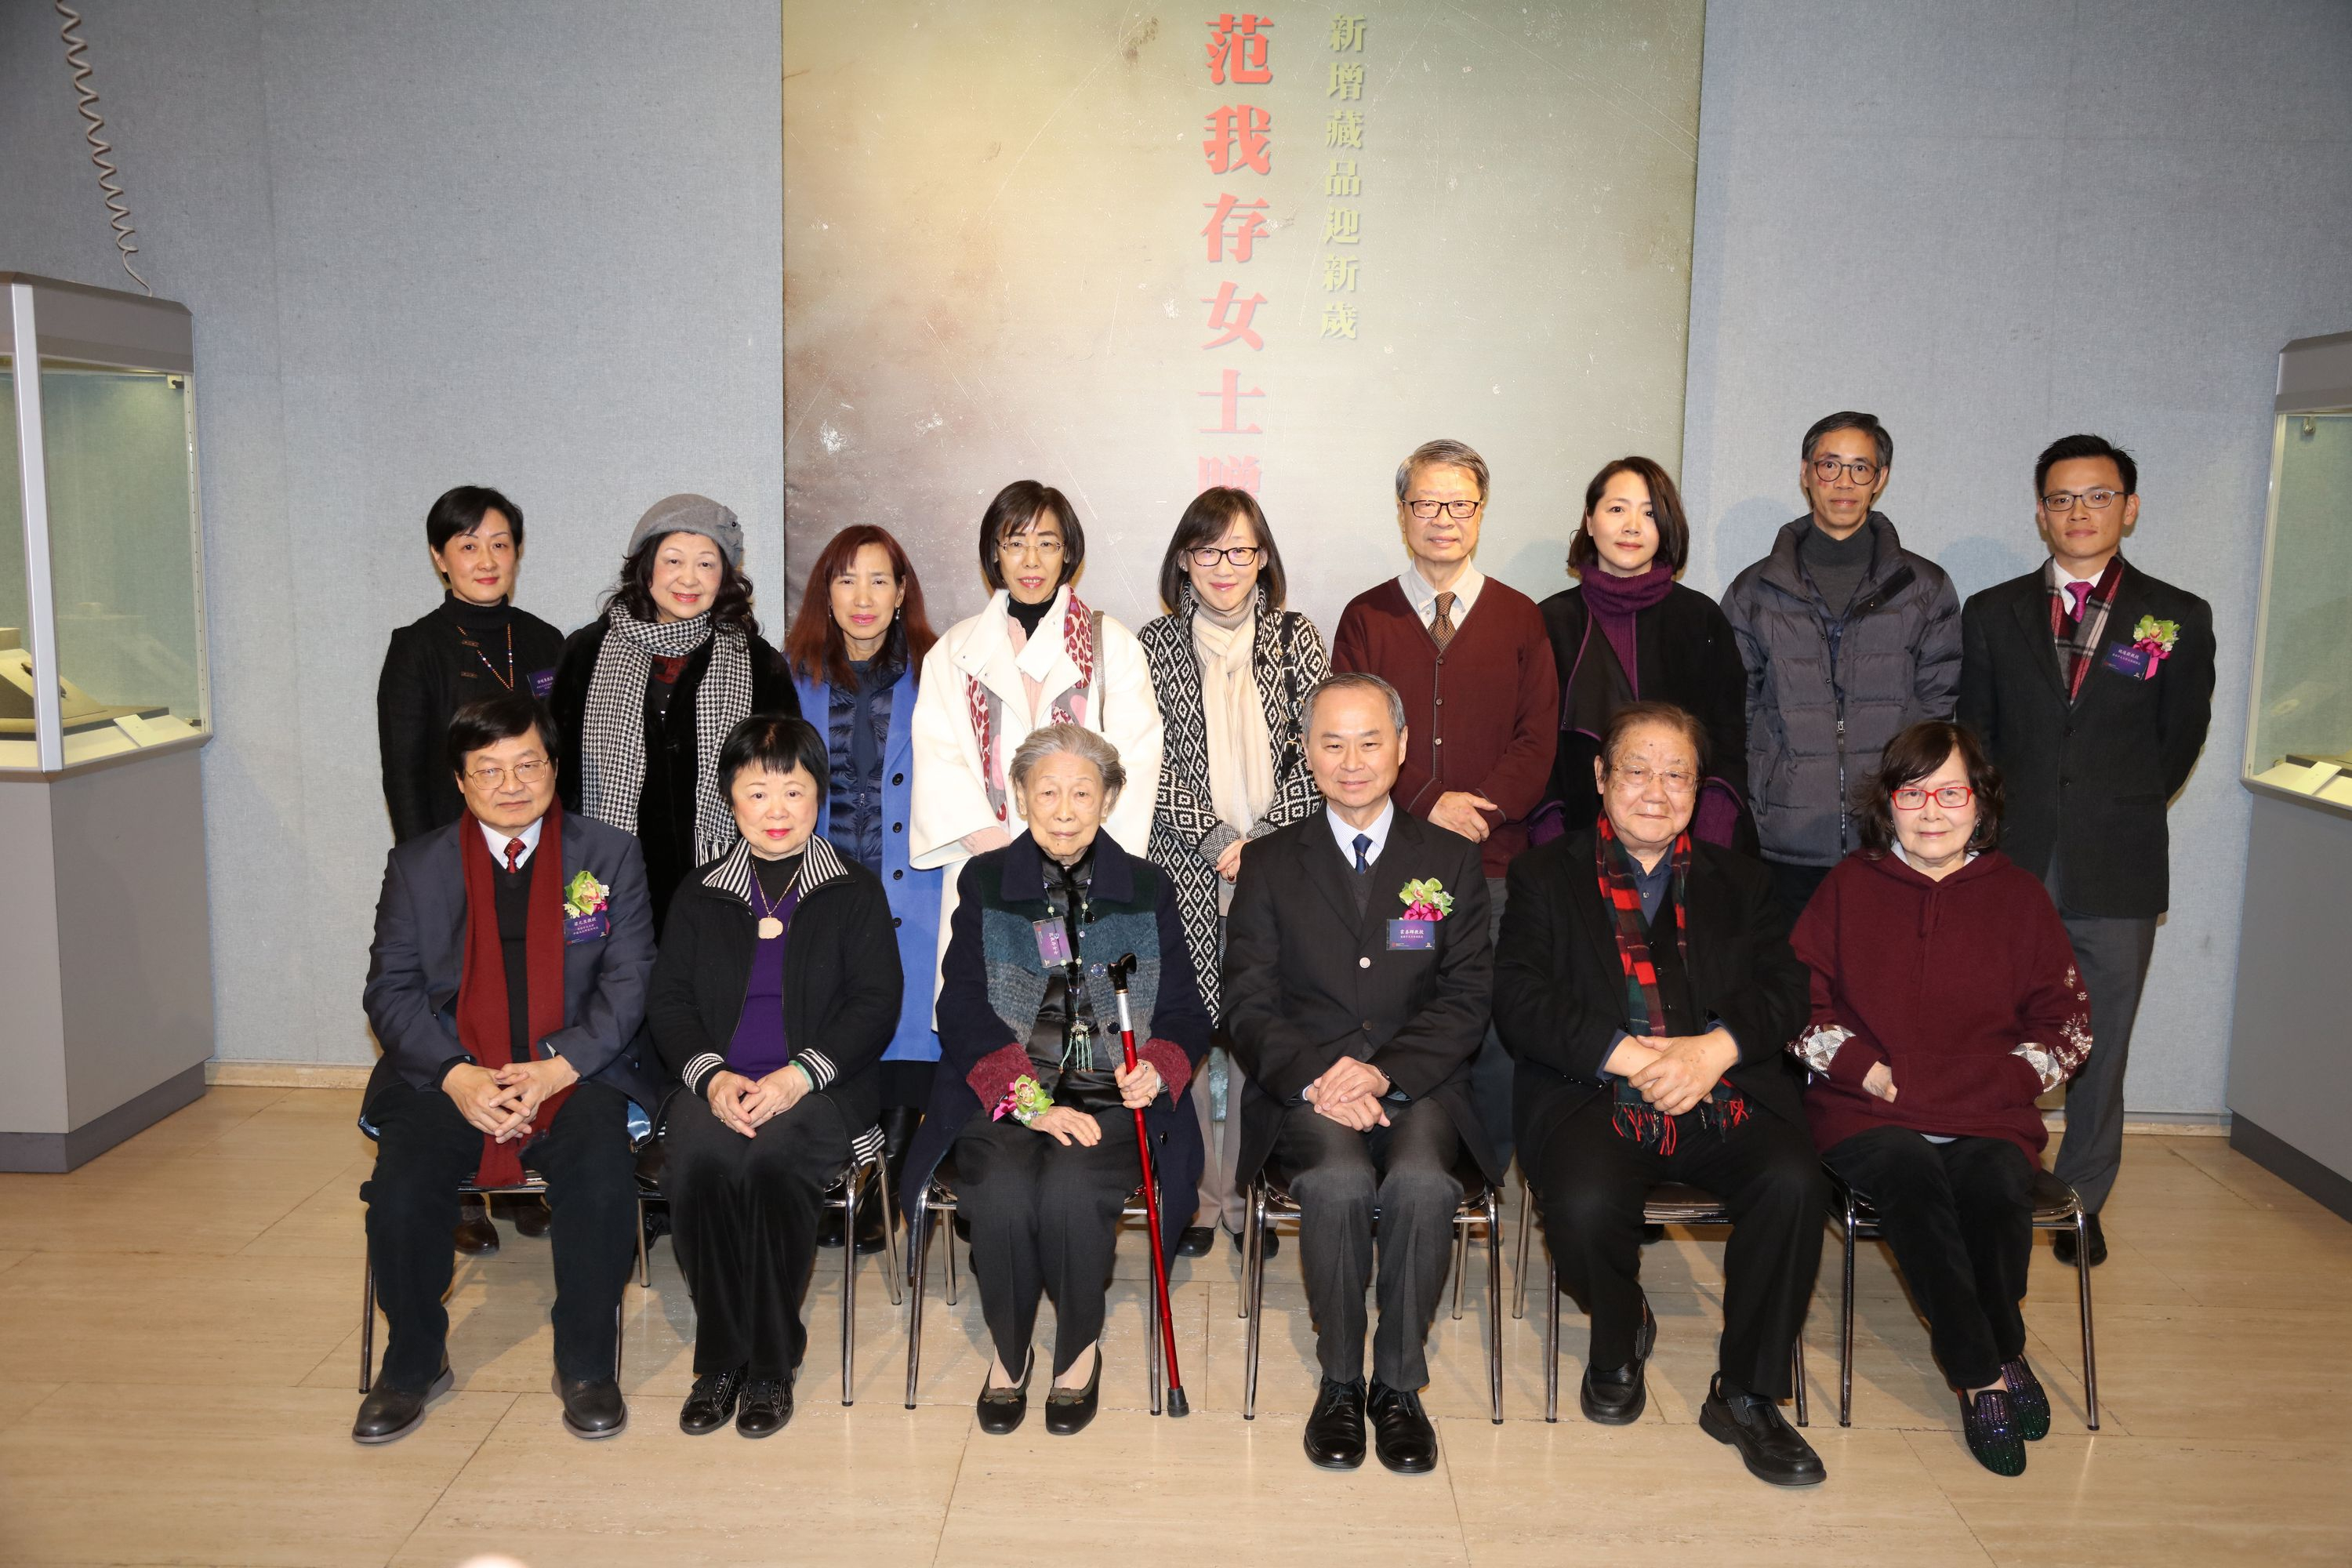 Ms. Wo-chun Fan and Prof. Fok Tai-fai pose for a group photo with guests.